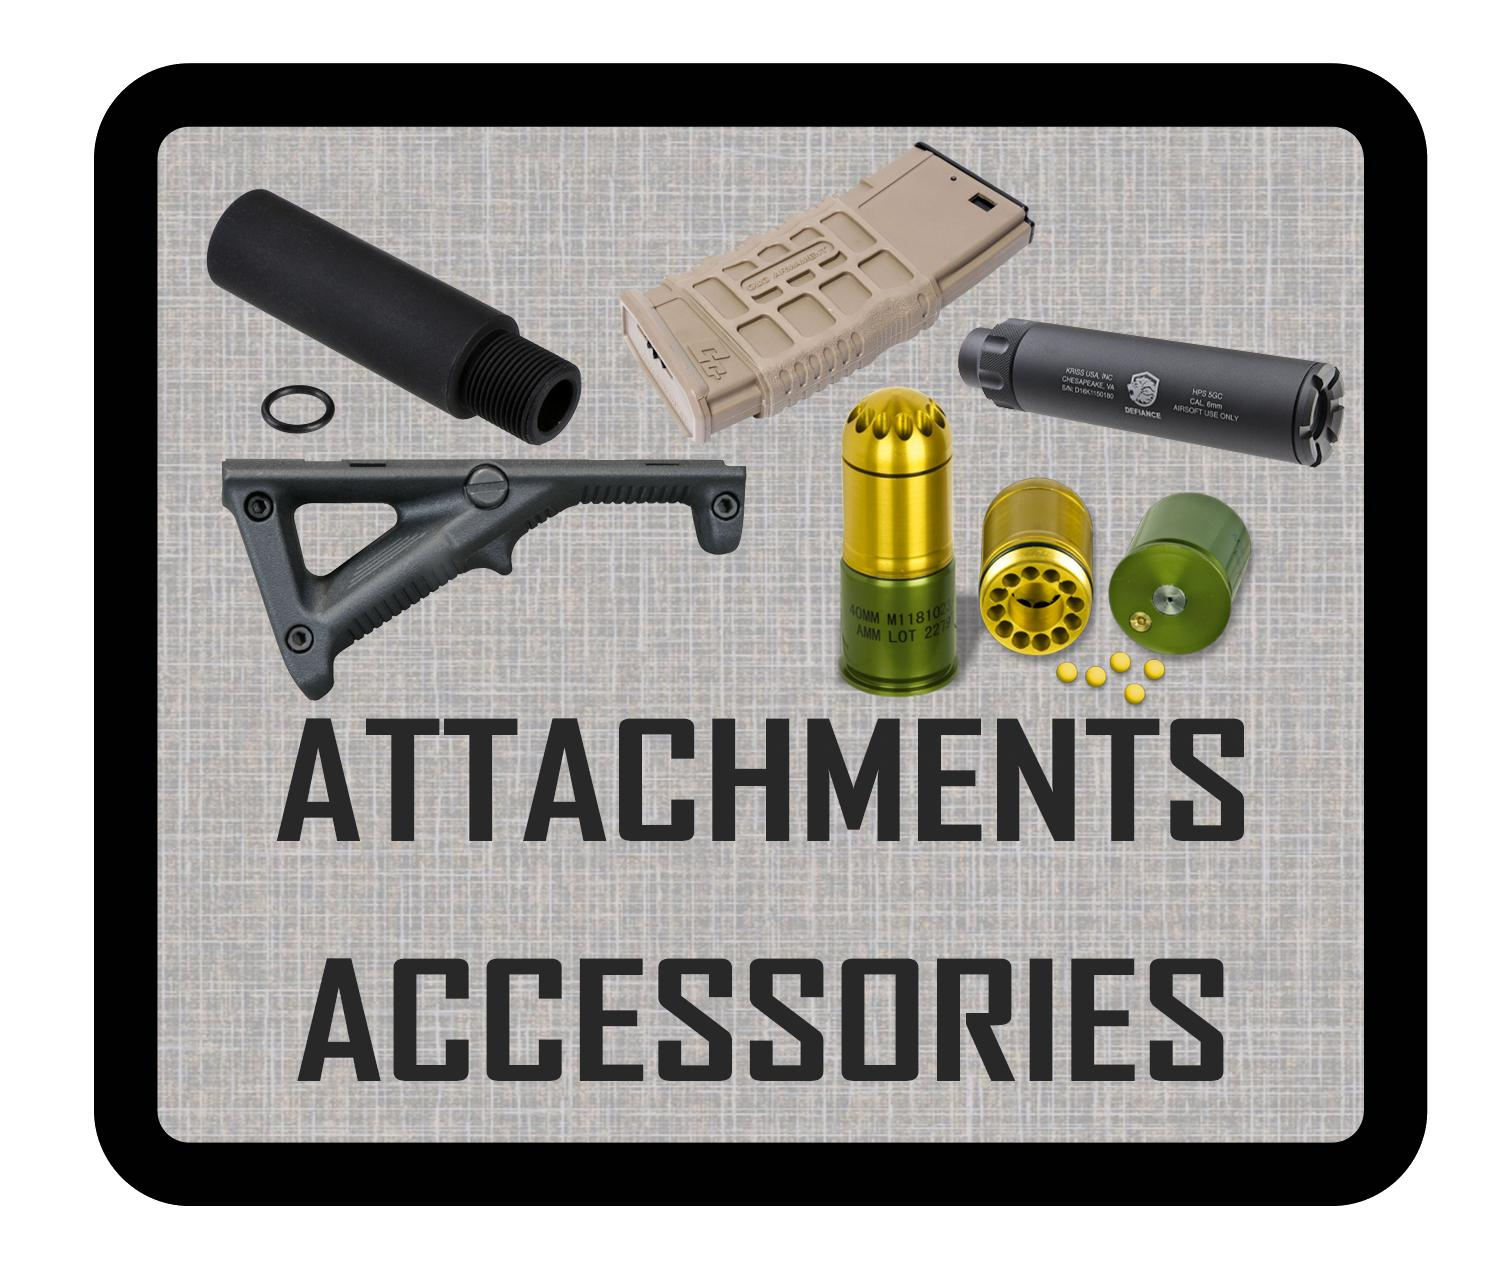 ATTACHMENTS / ACCESSORIES